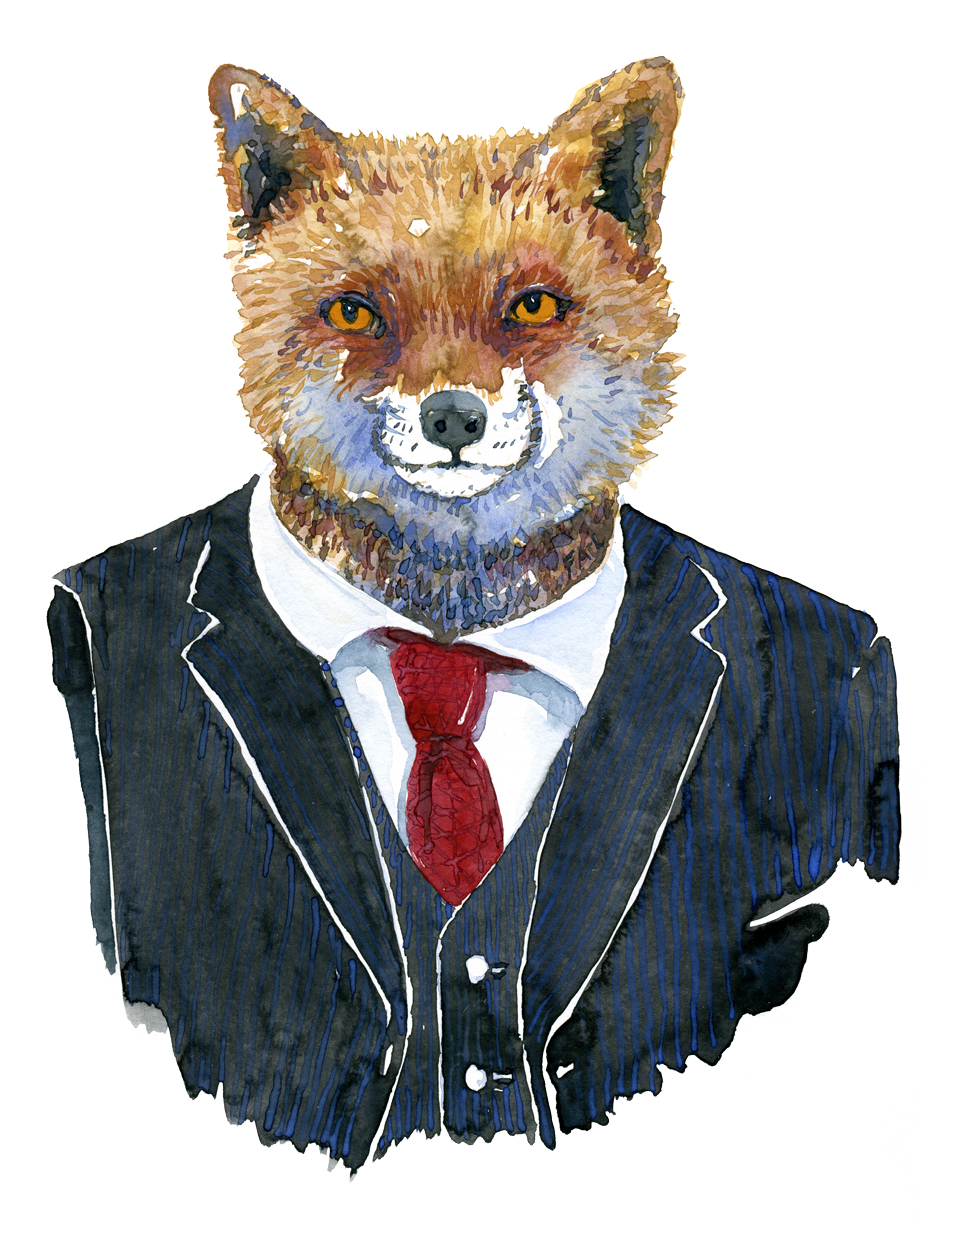 Fox in a blue suit. Fashion watercolor painting of animal in suit by Frits Ahlefeldt